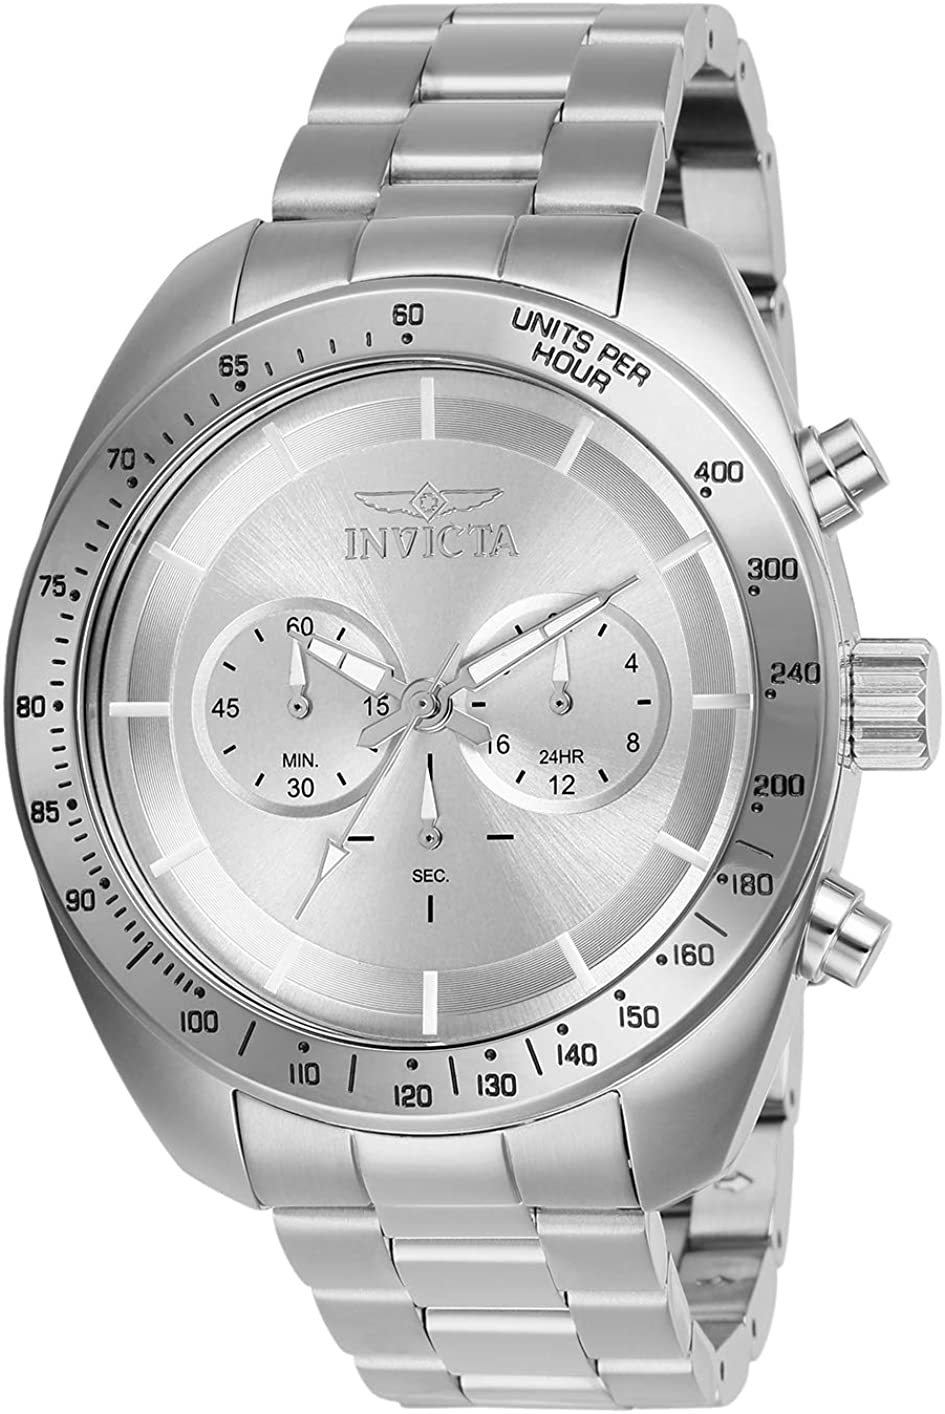 Invicta Men's Speedway Quartz Watch with Stainless Steel Strap, Silver, 22 (Model: 28904)